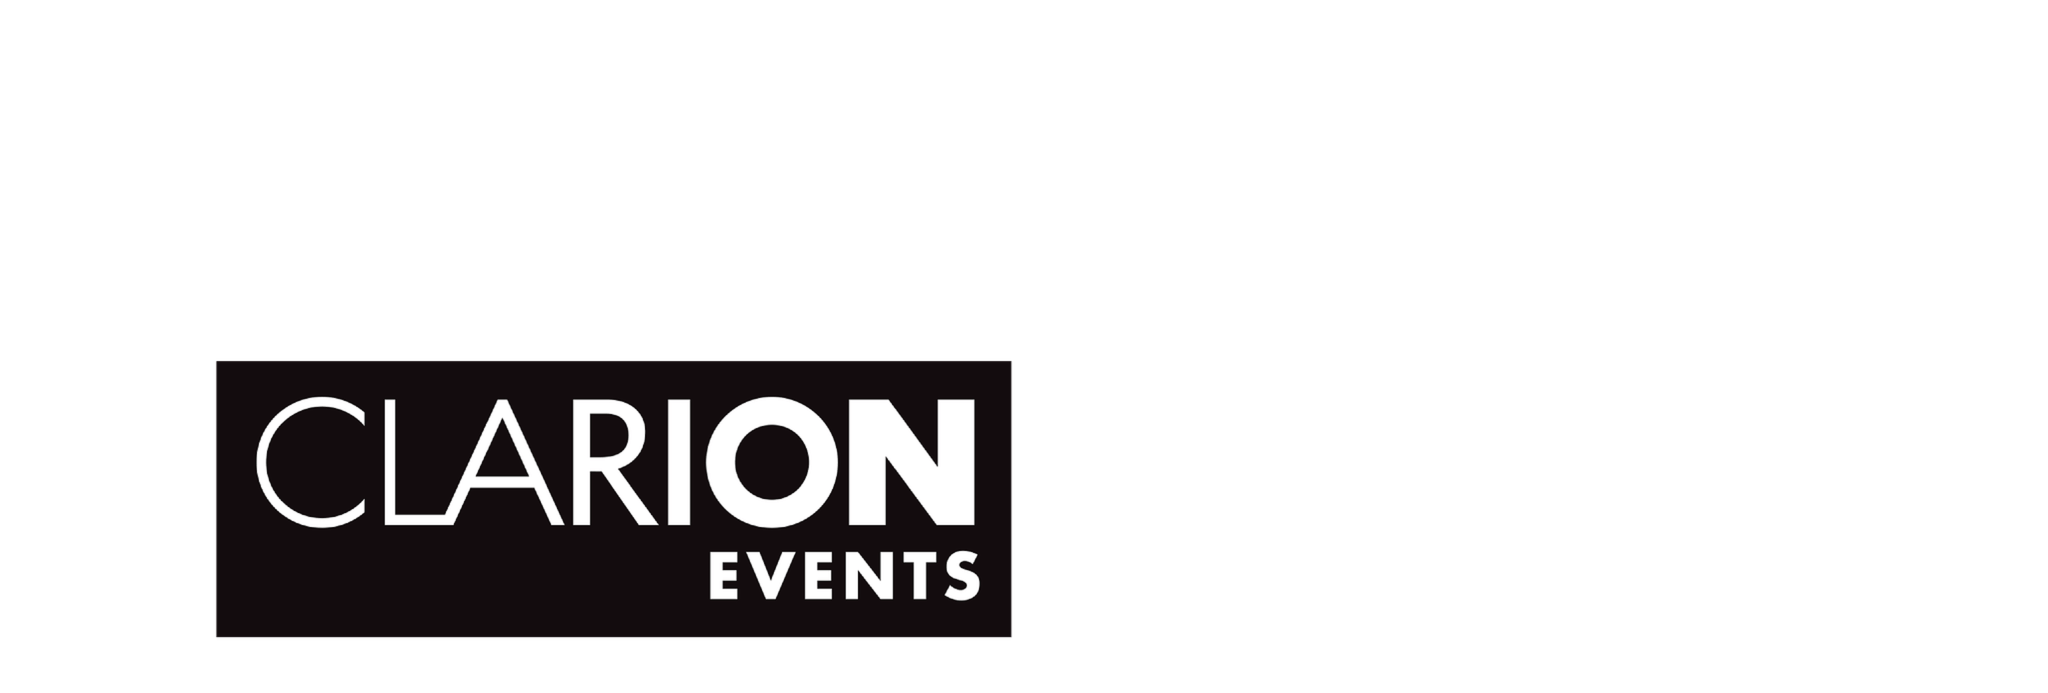 Clarion Events Fire & Rescue Group